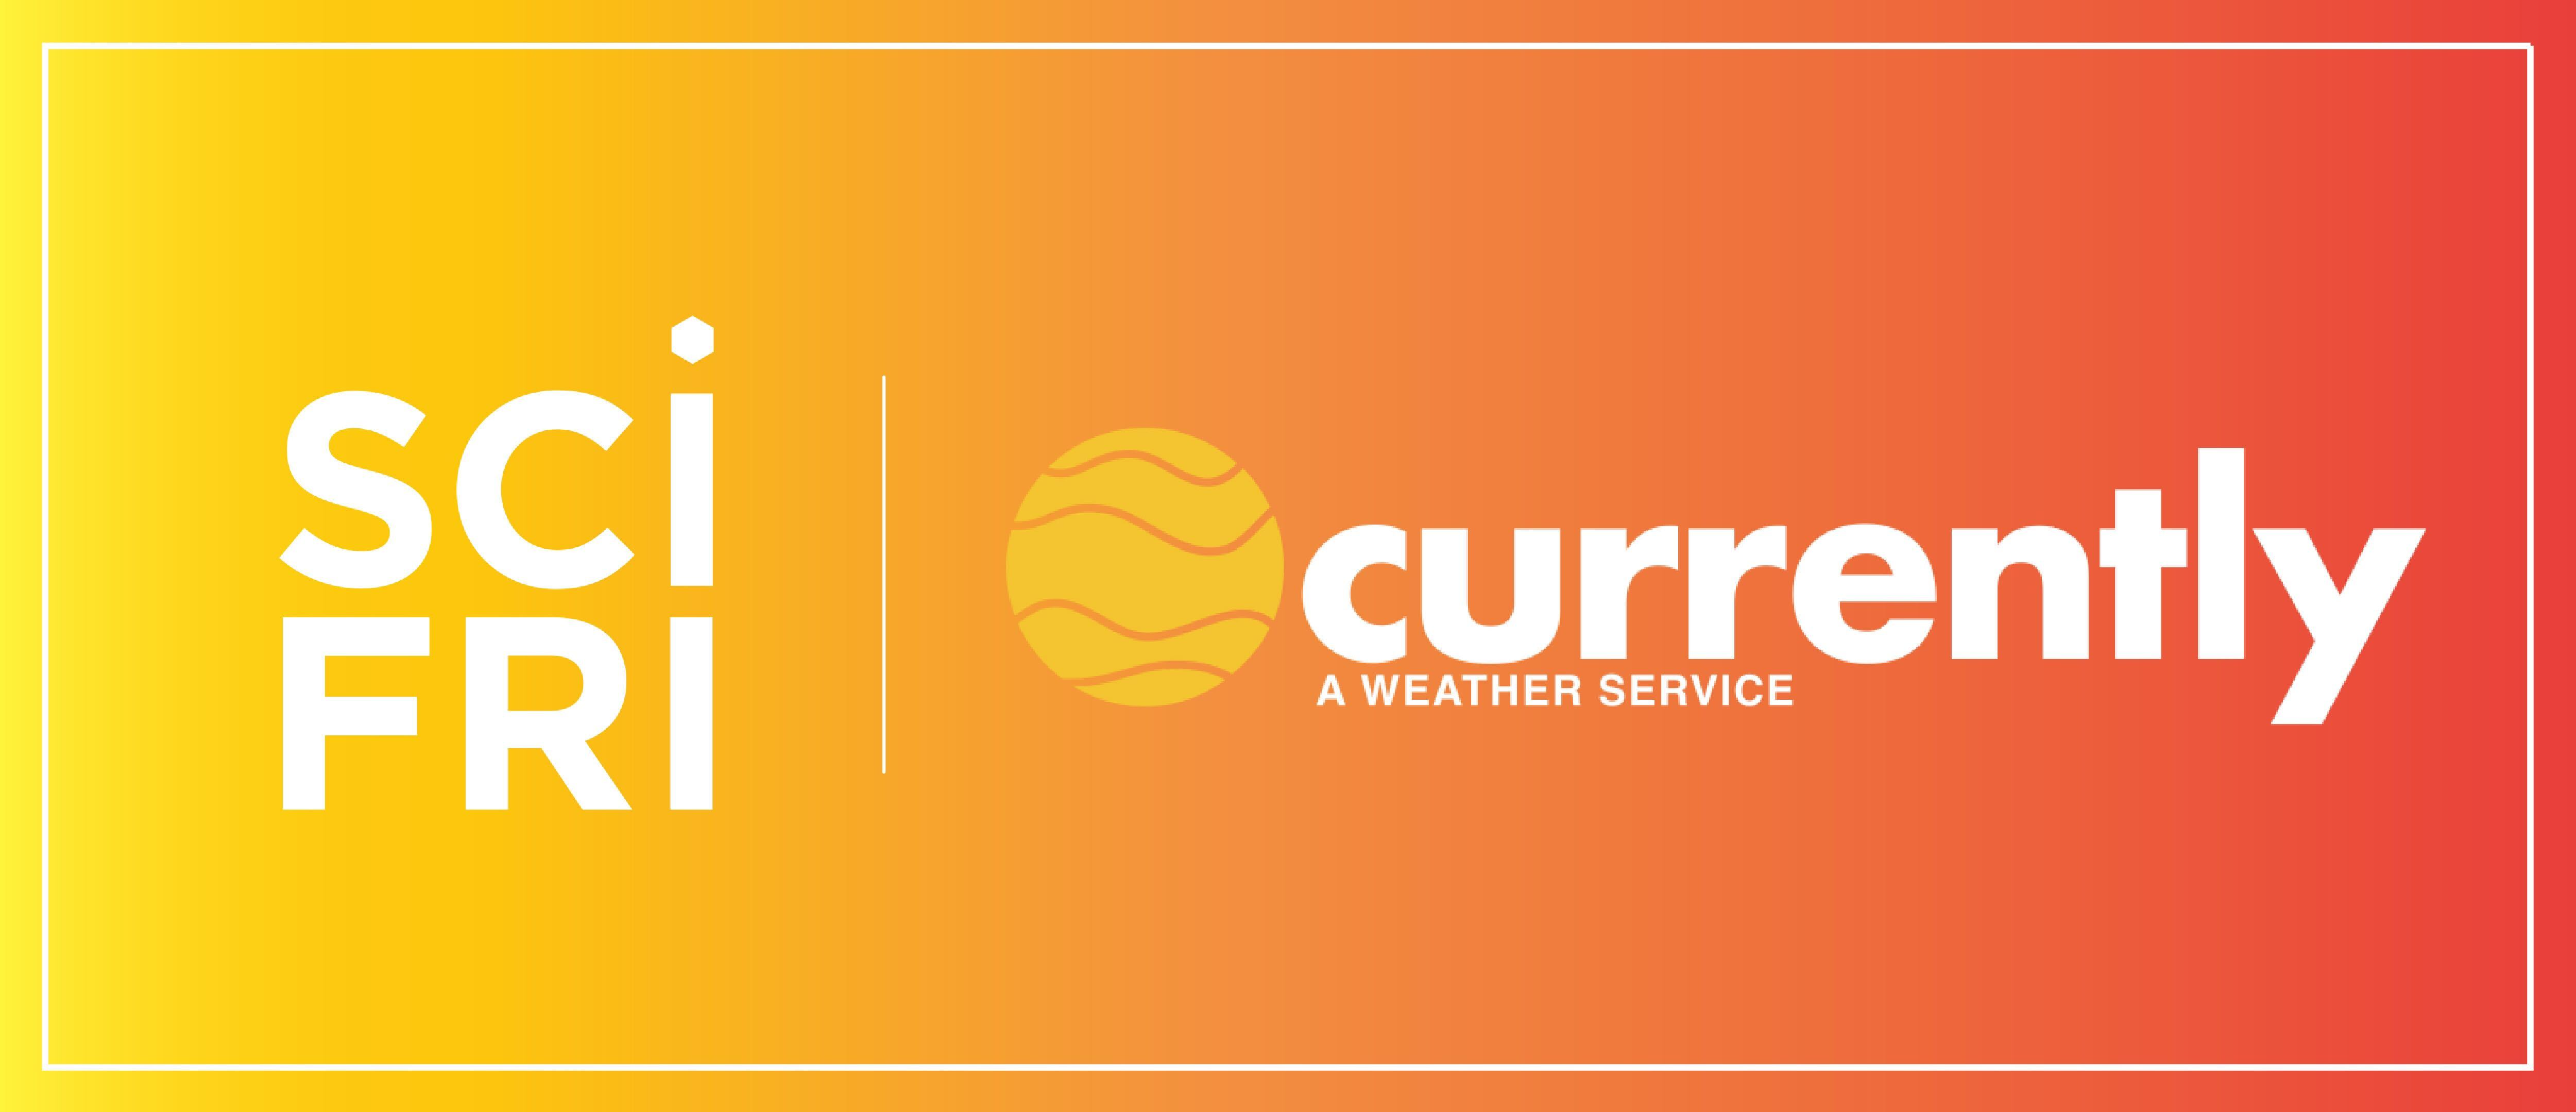 """an orange rectangular logo with the logos """"scifri"""" and """"currently a weather service"""" written on it"""